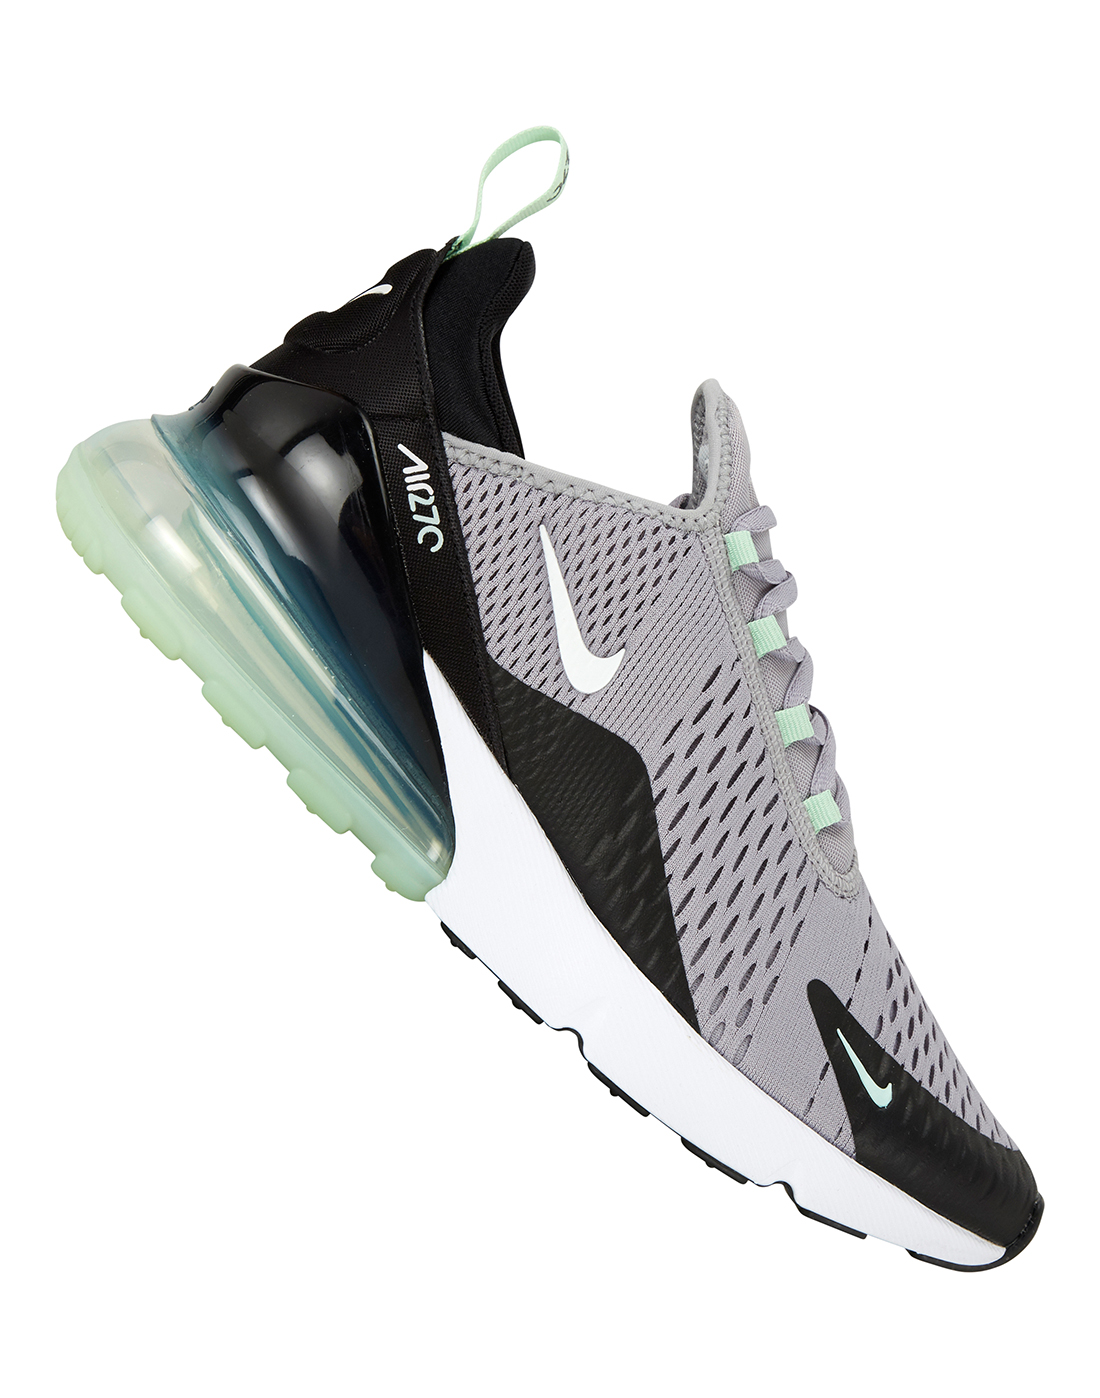 40a3e11a97 Men's Grey & Green Nike Air Max 270 | Life Style Sports